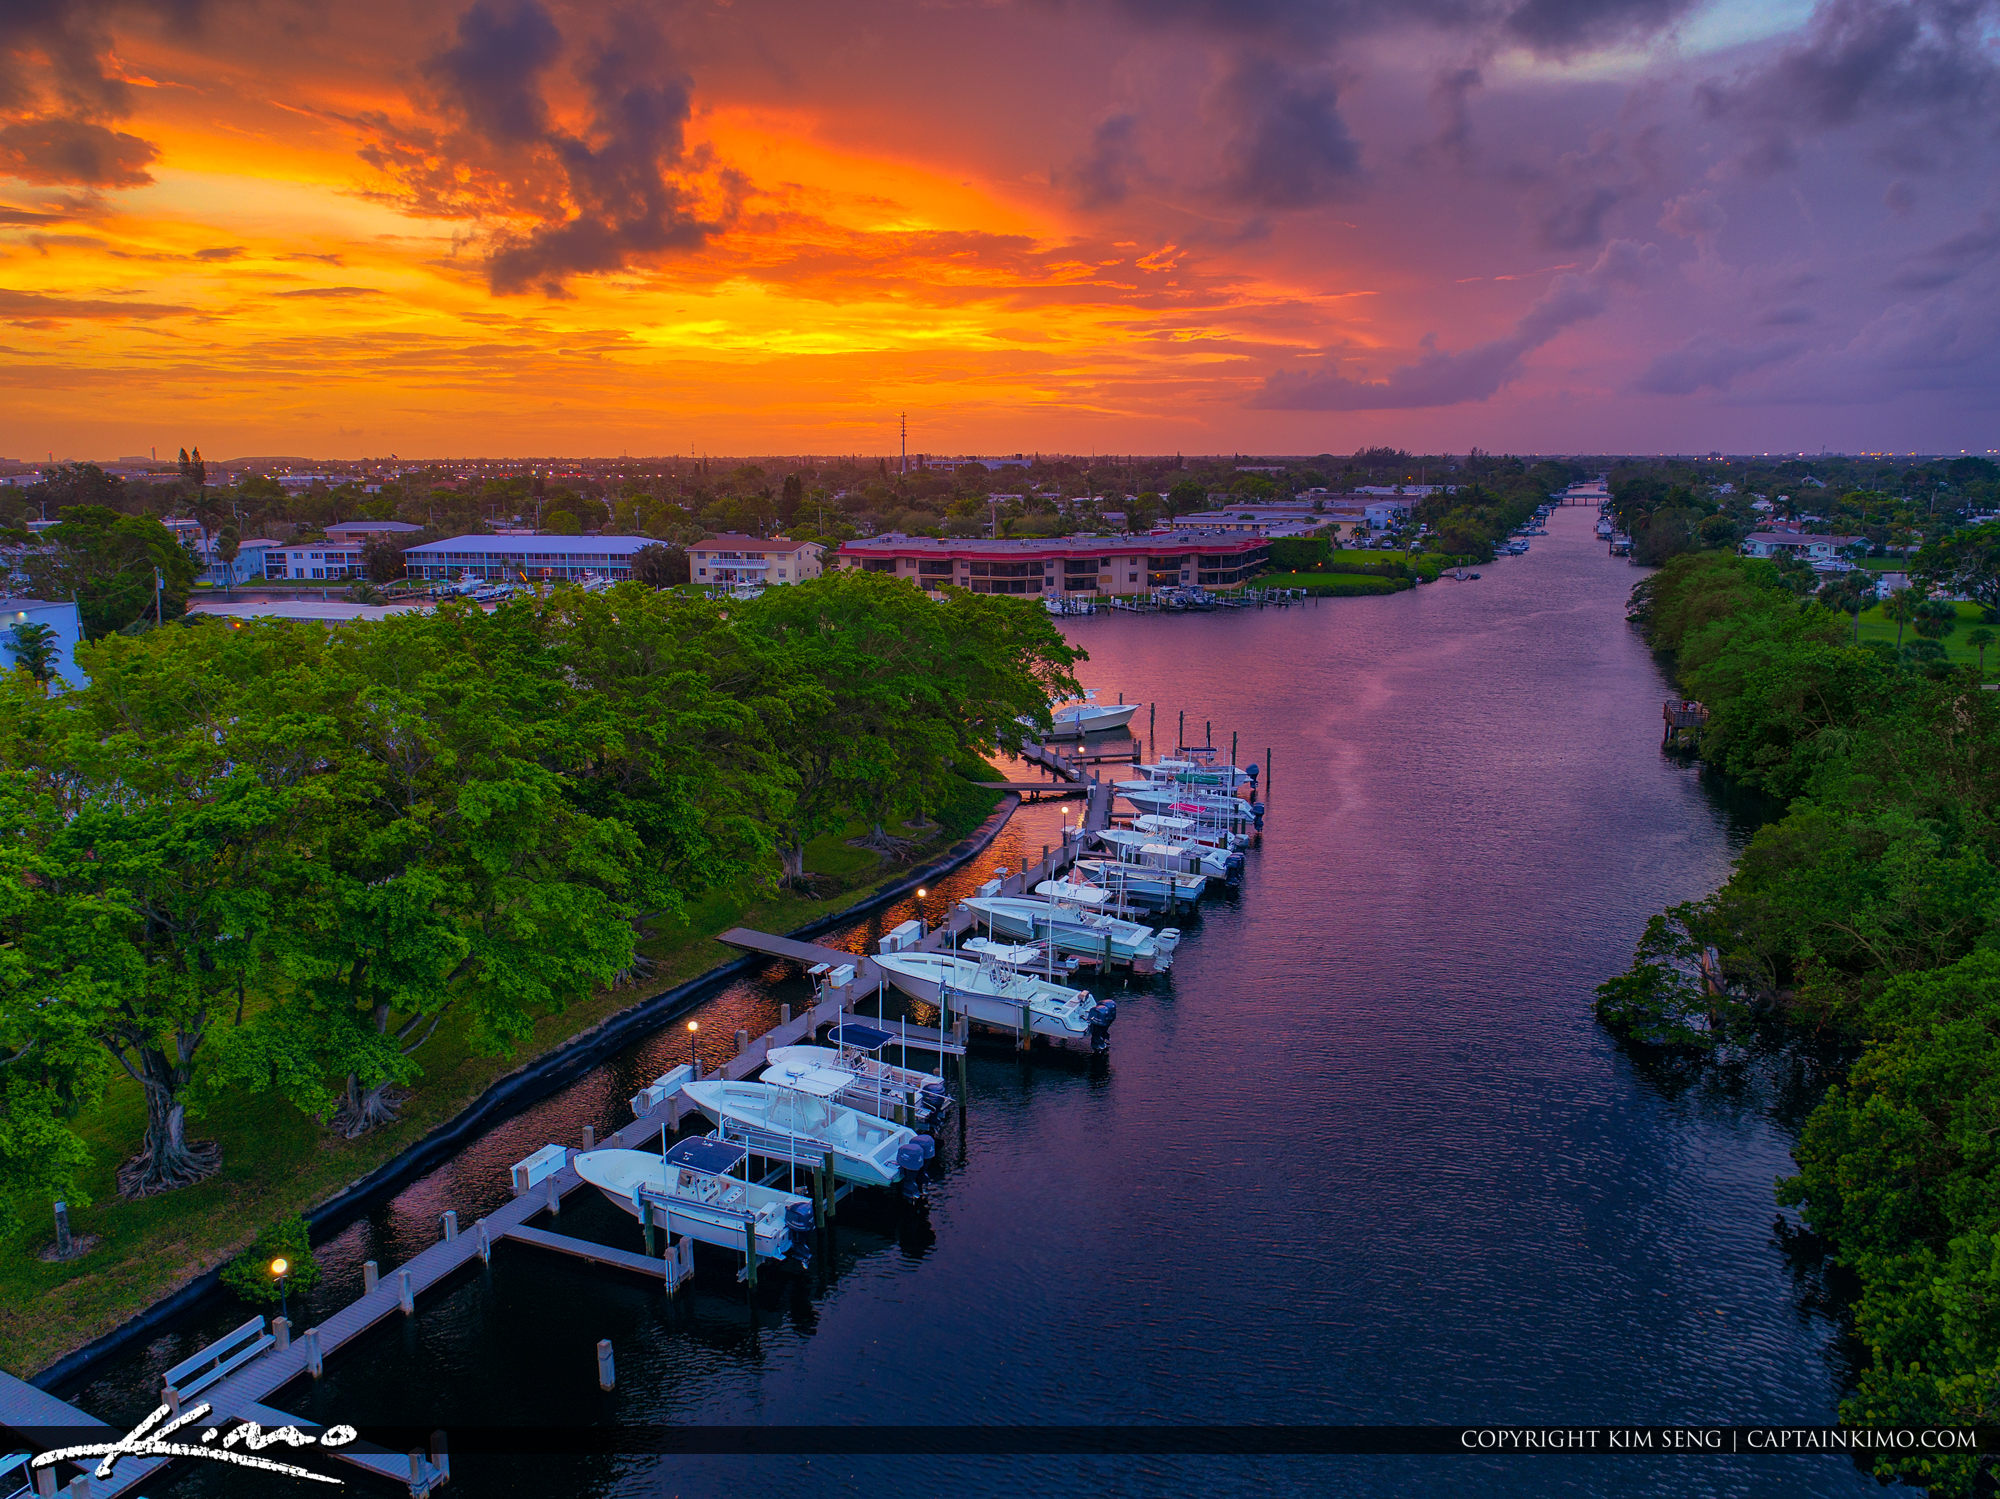 North Palm Beach Sunset Waterway Boats on Dock